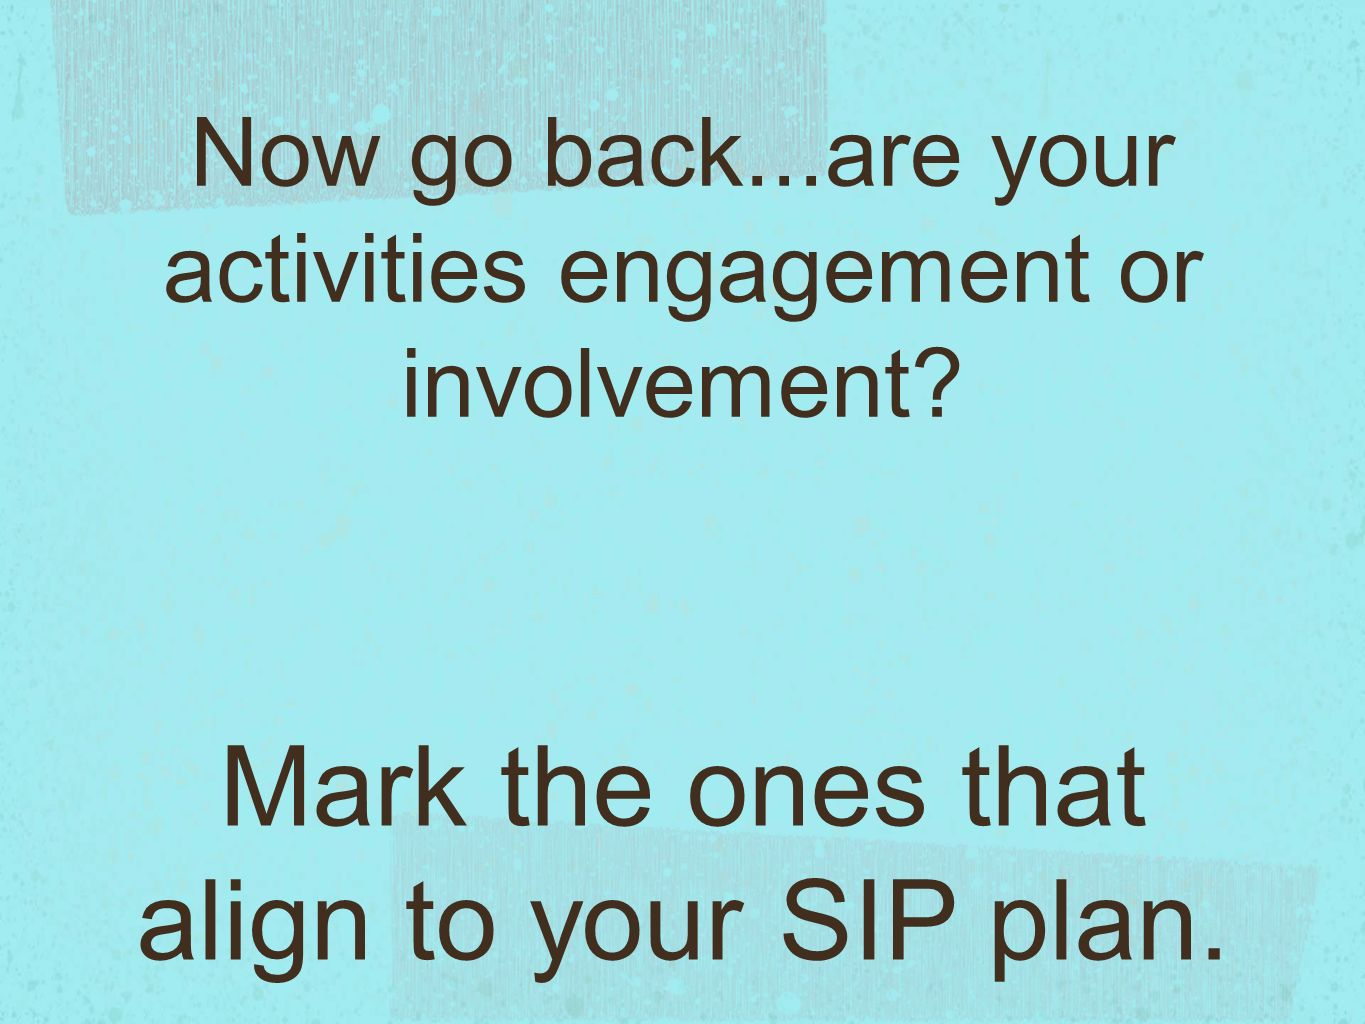 Now go back...are your activities engagement or involvement.